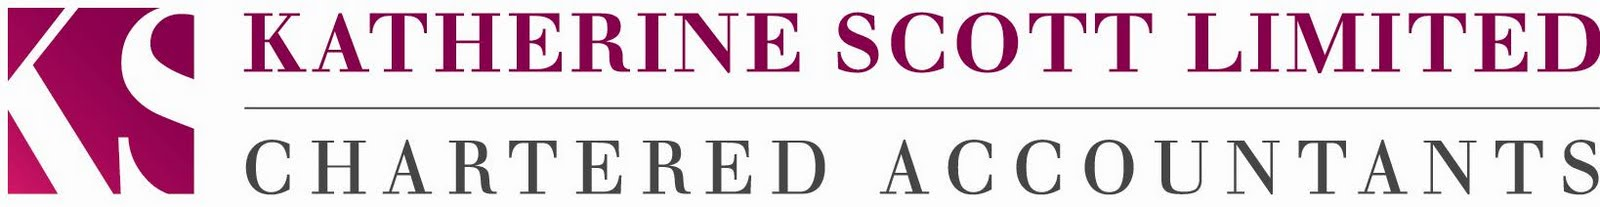 Katherine Scott Limited Chartered Accountants